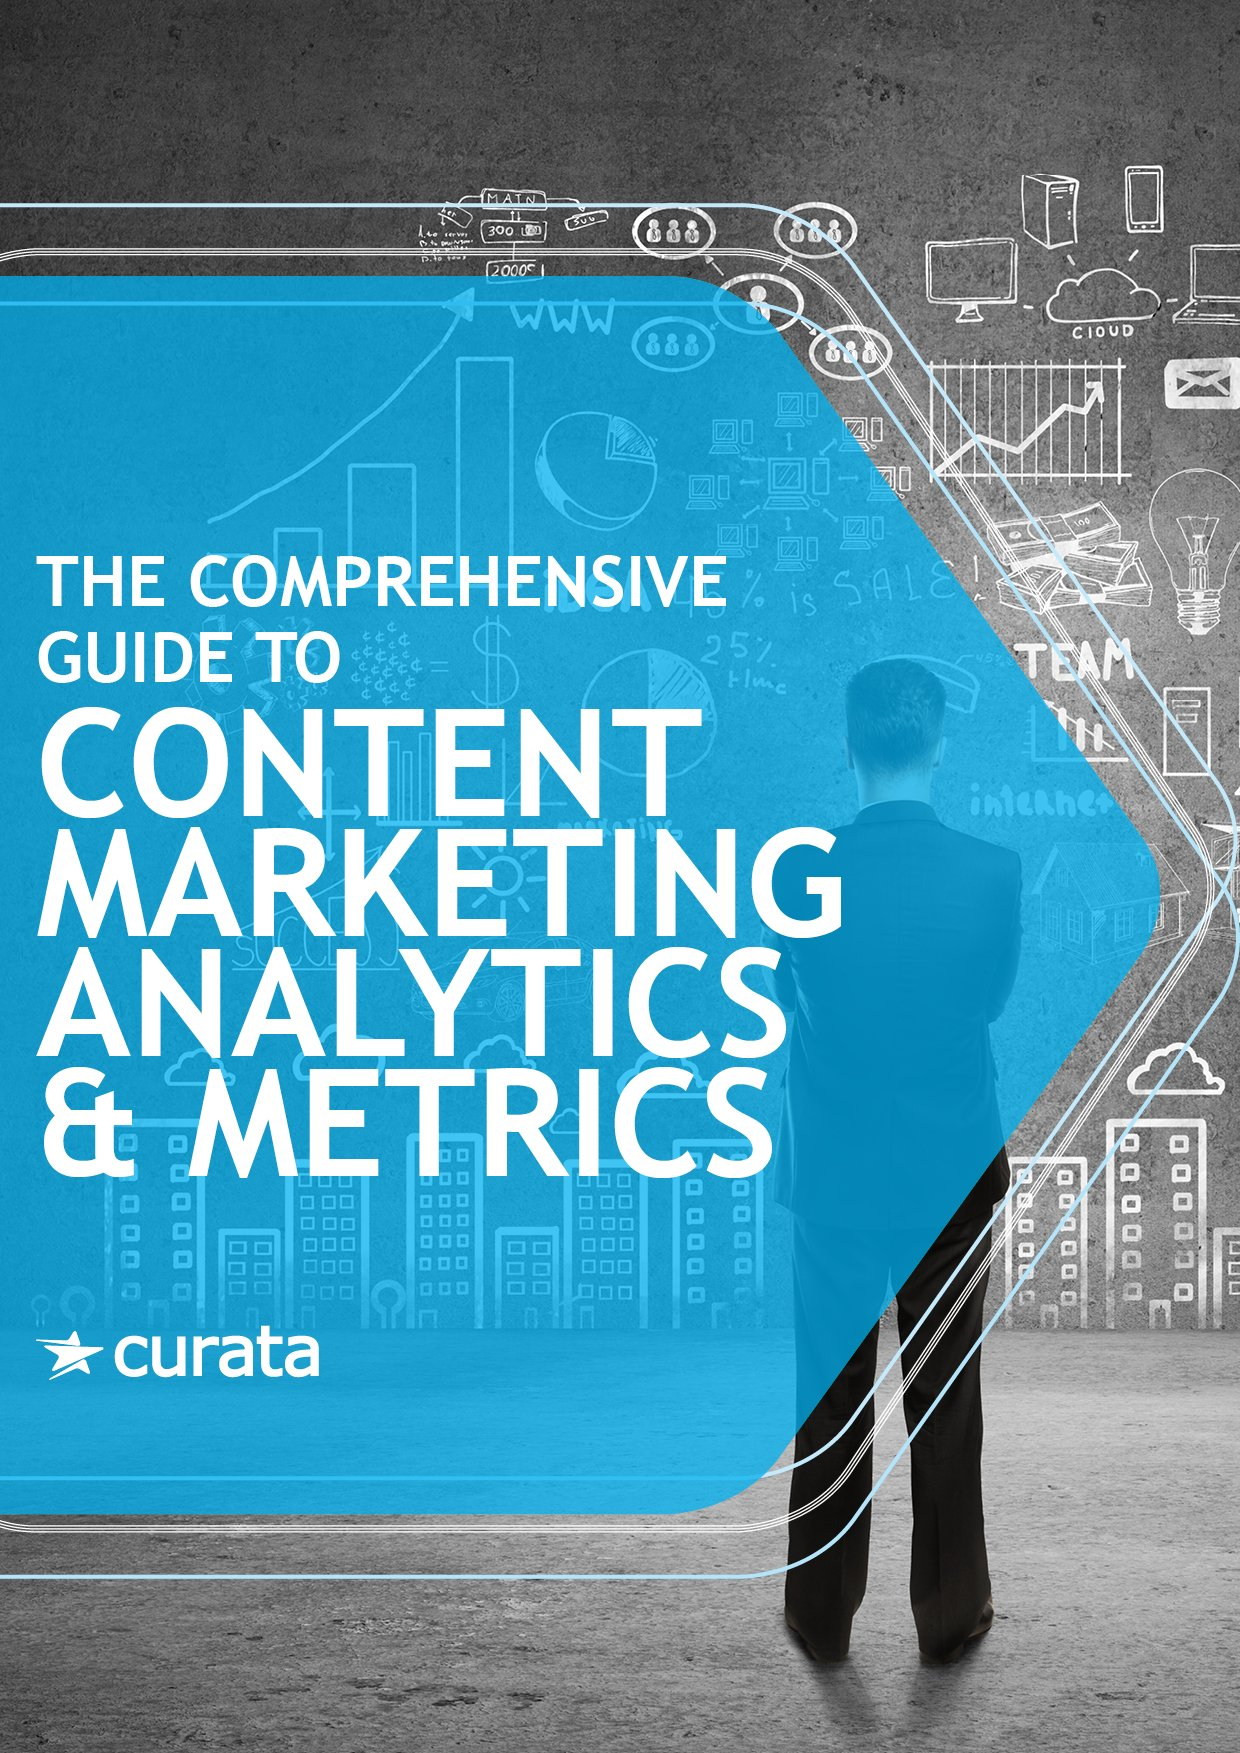 The Comprehensive Guide to Content Marketing Analytics & Metrics